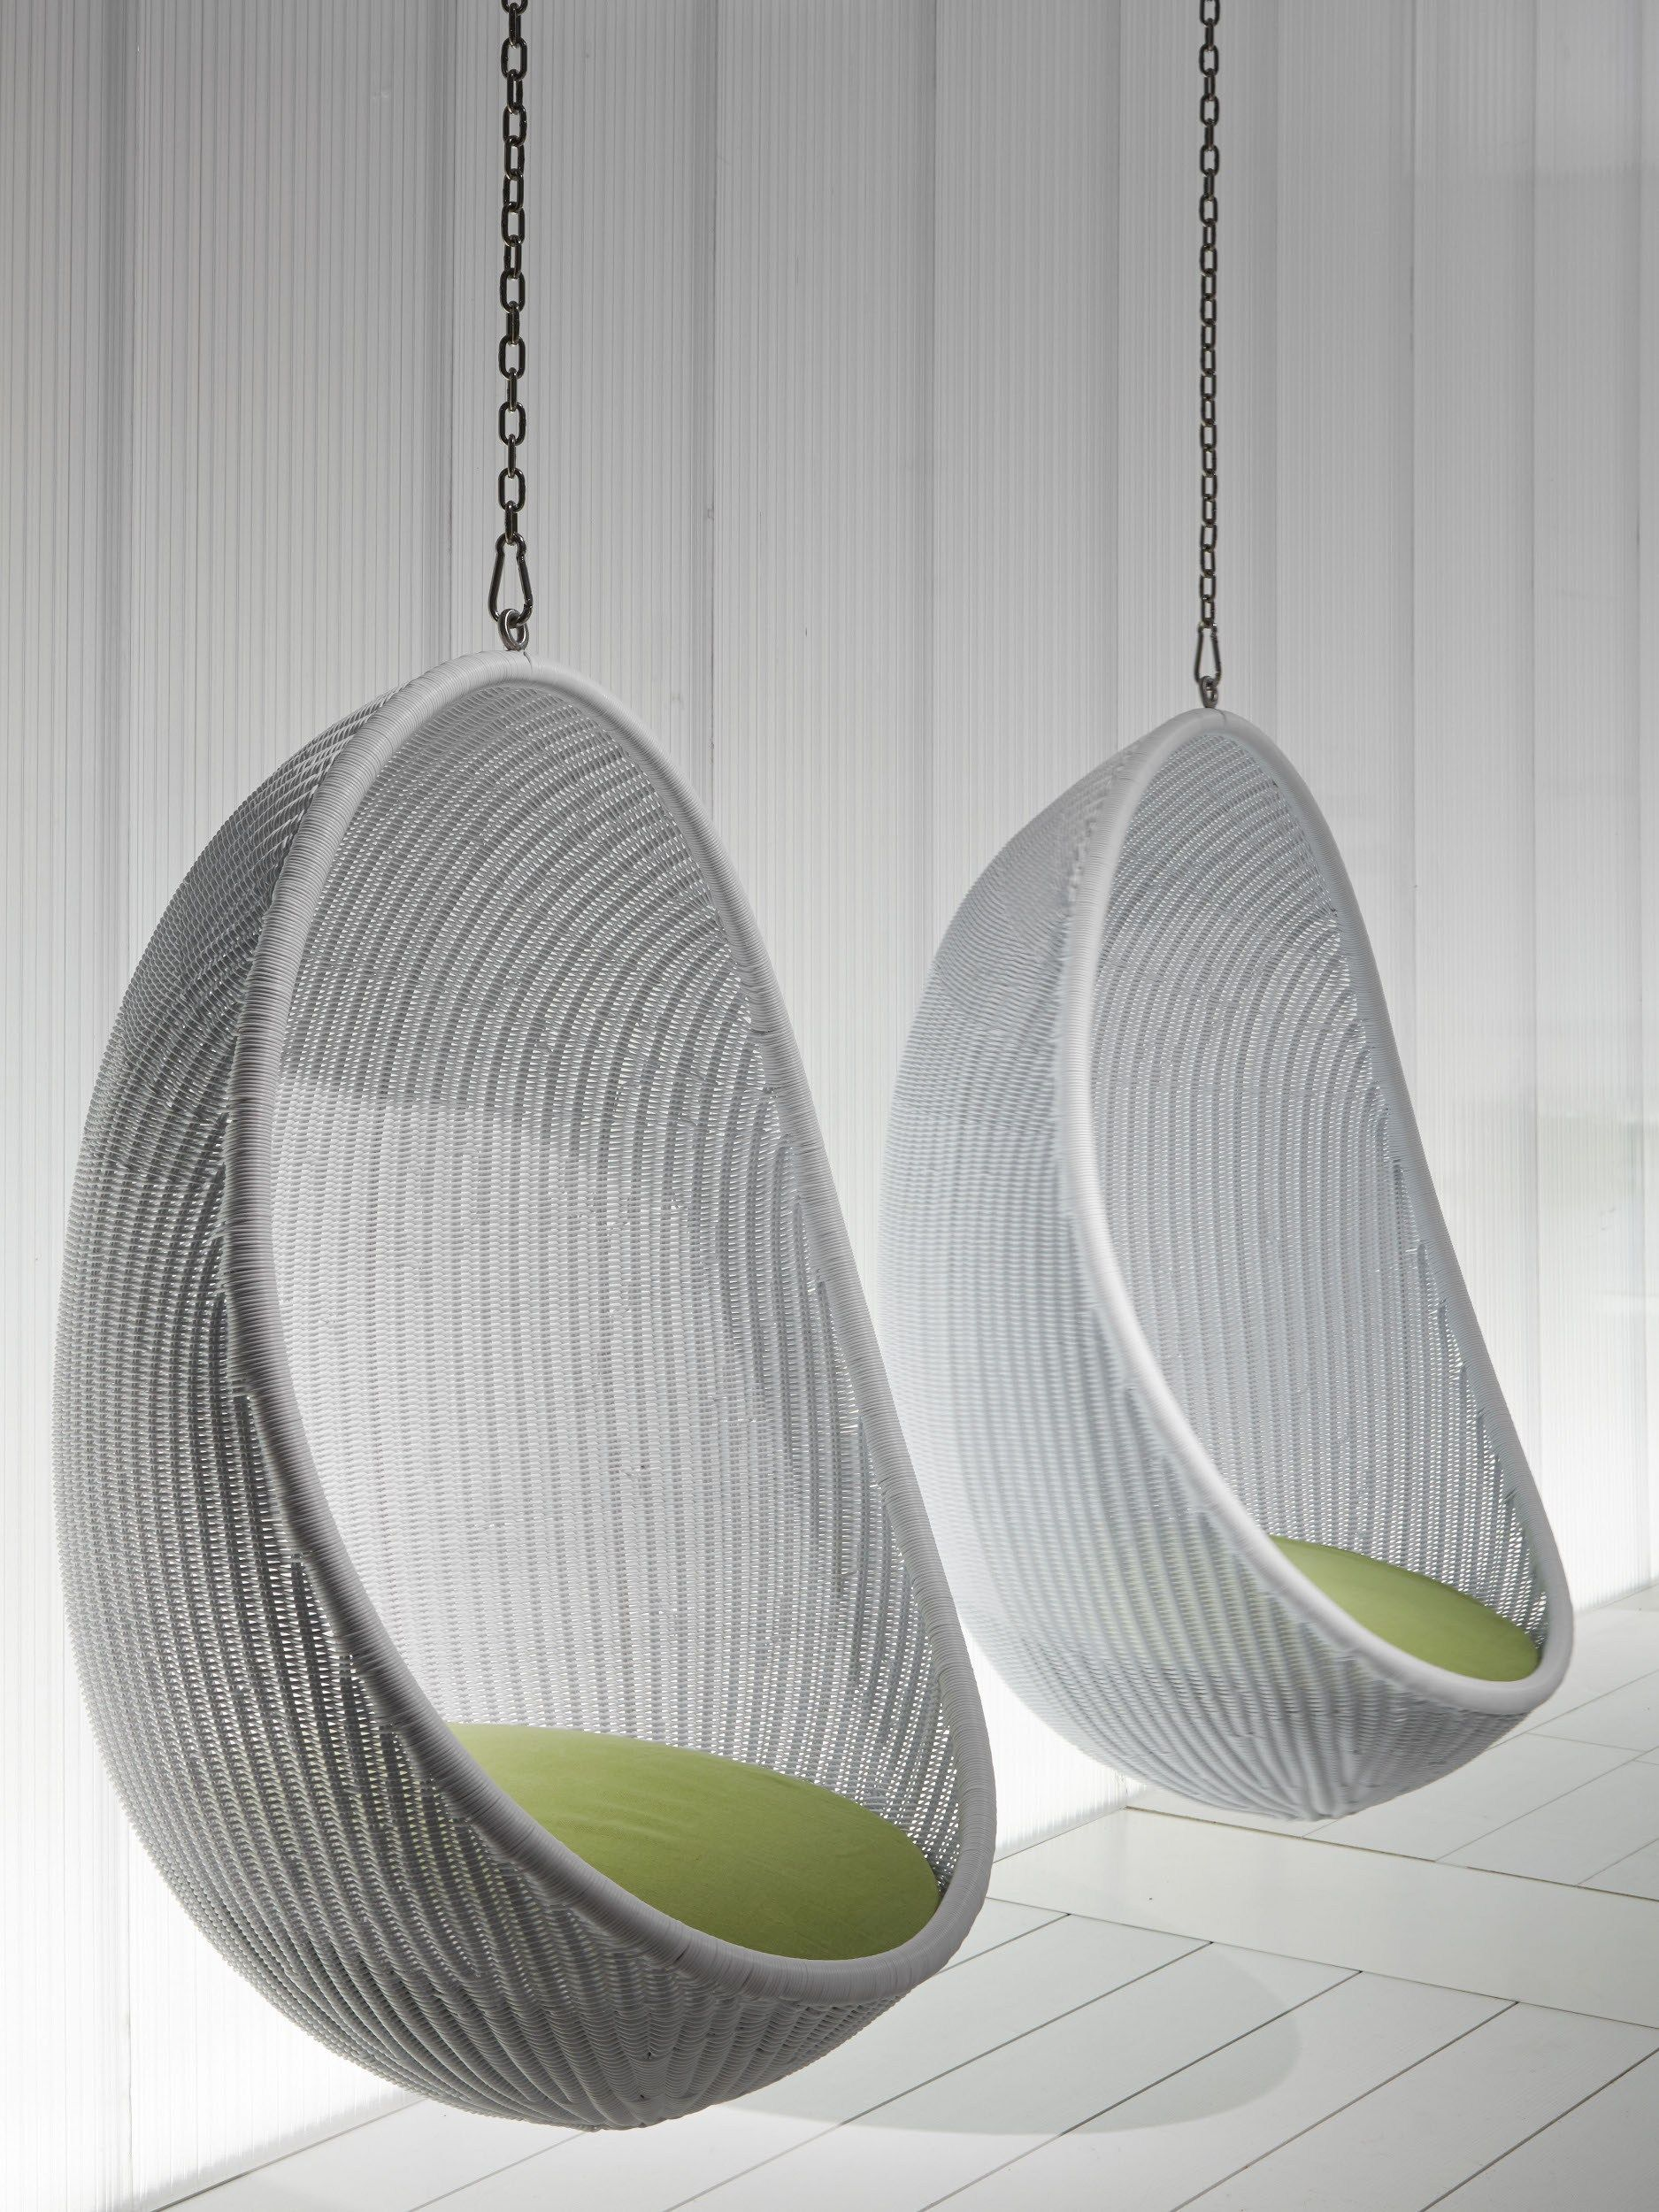 Furniture Nice Looking White Woven Rattan Two Hanging Egg Chair With White Wooden Wall Panels